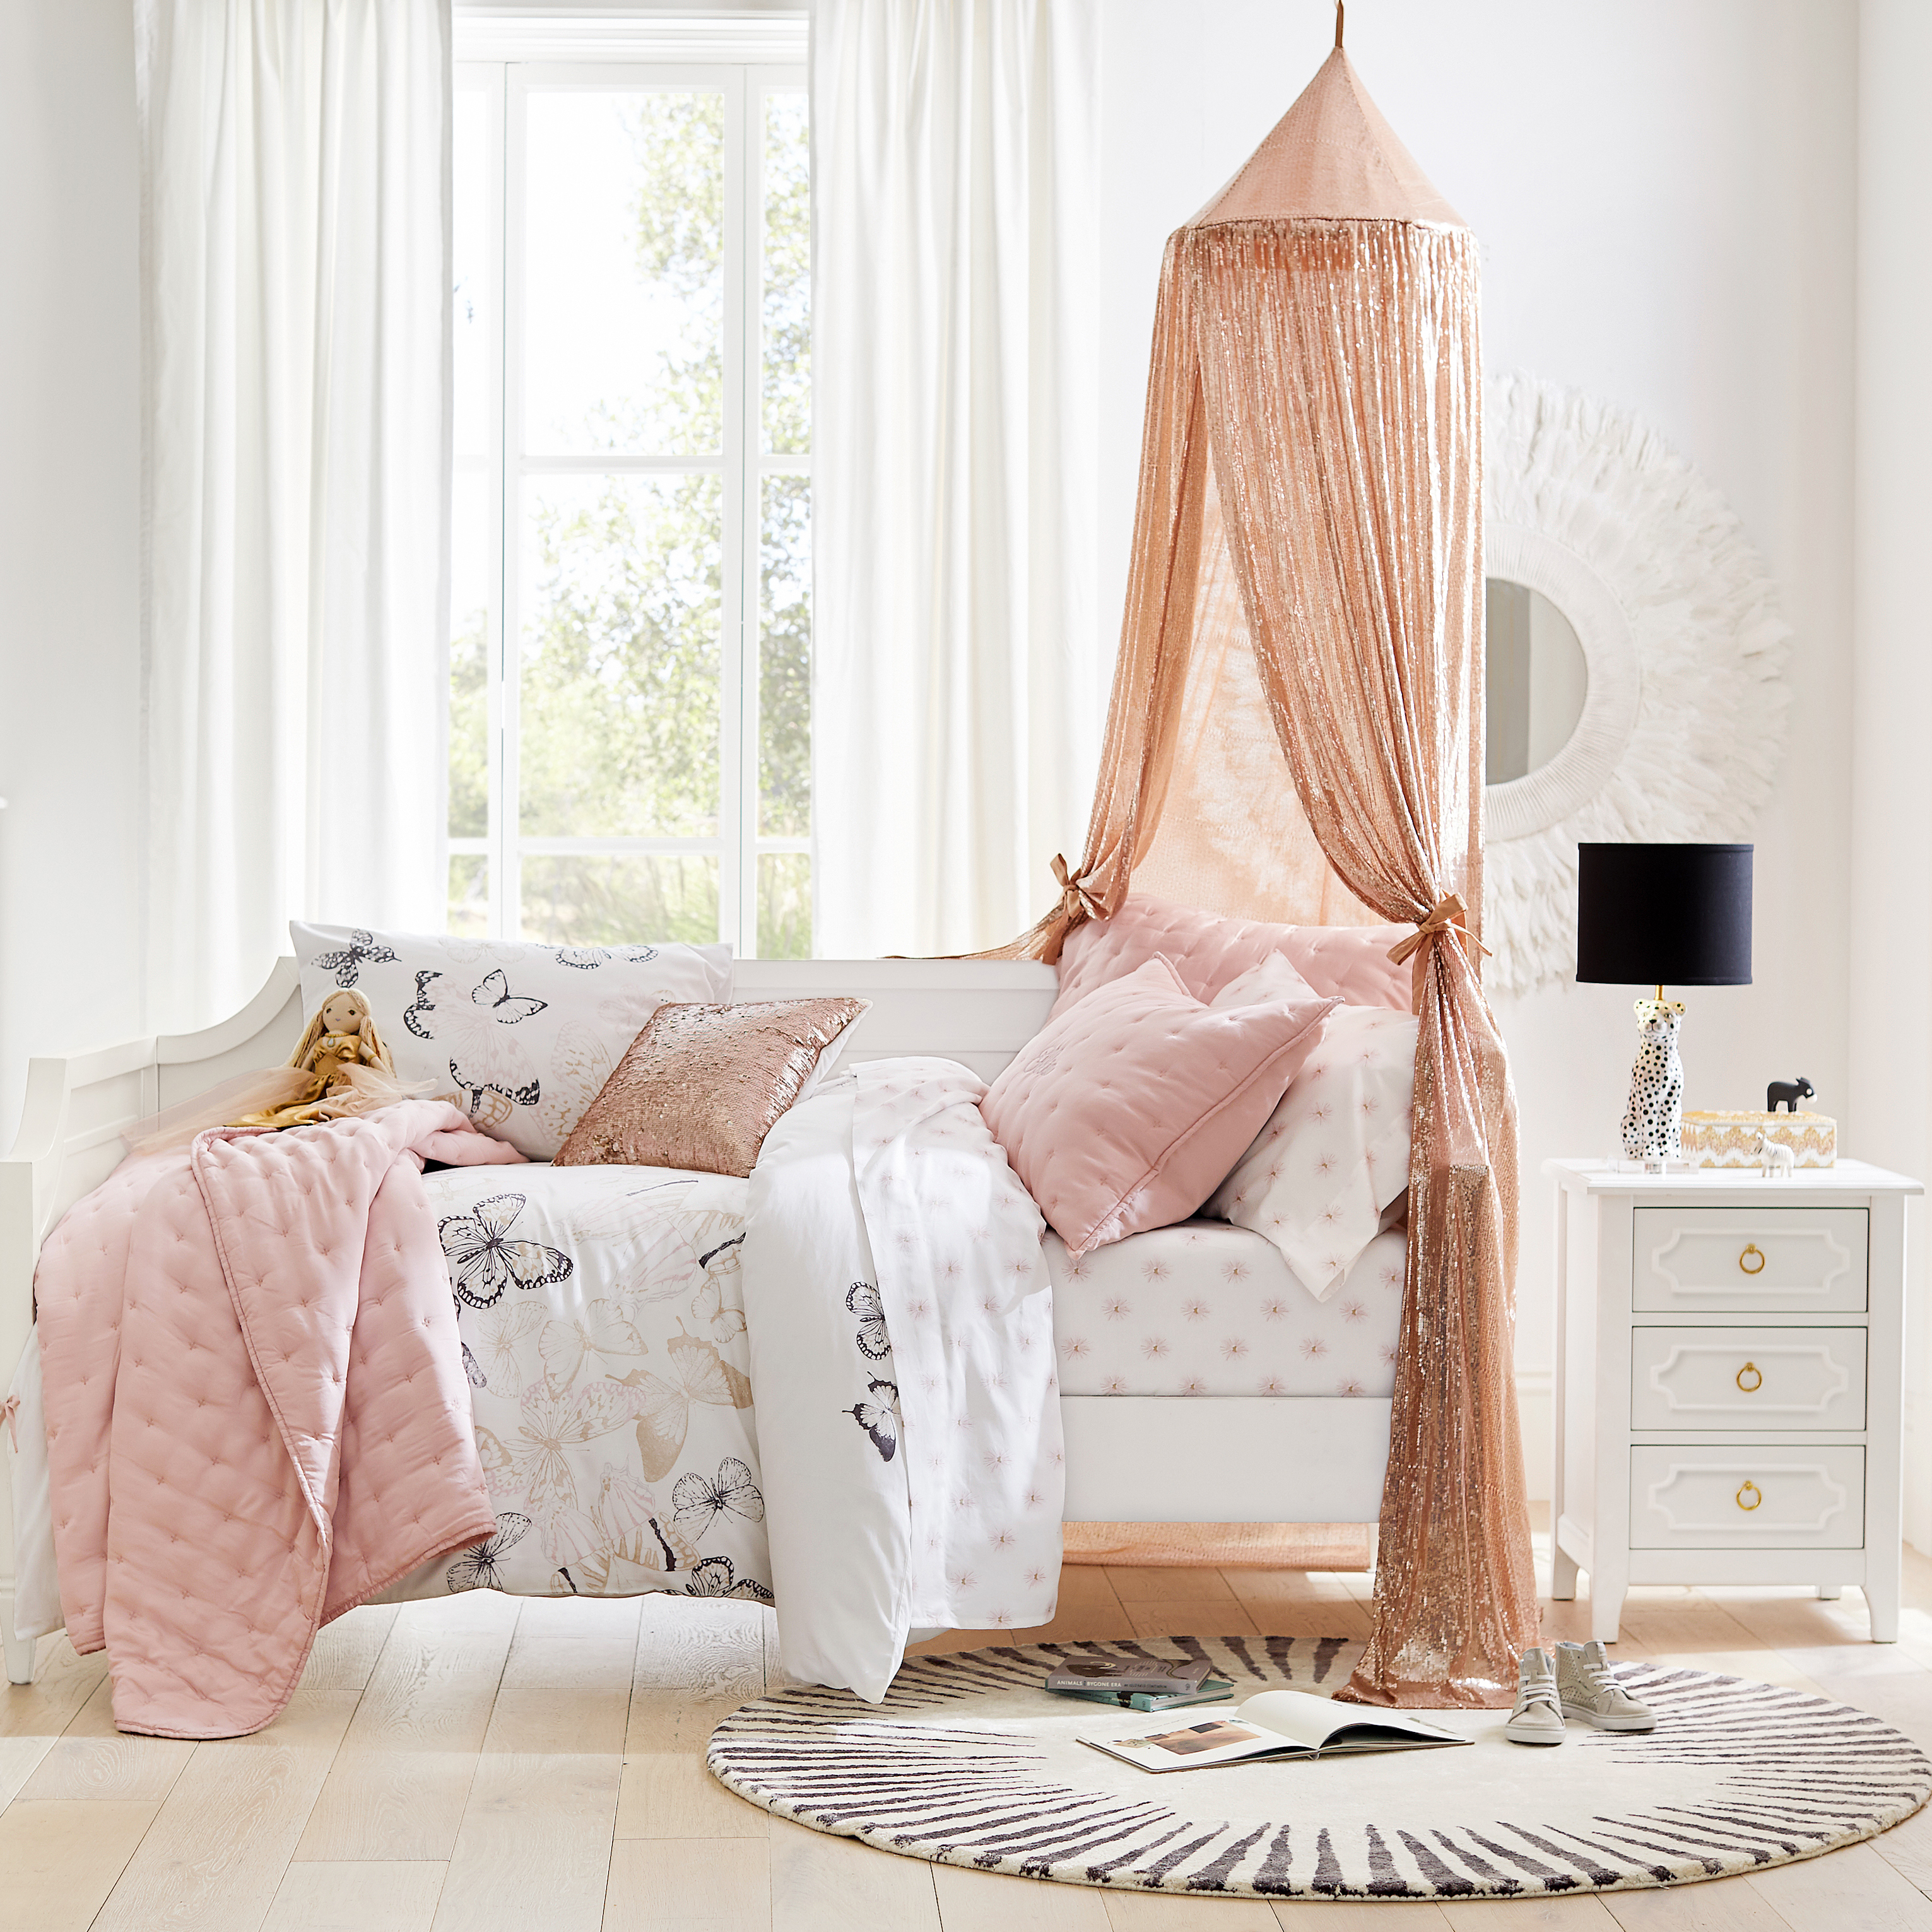 POTTERY BARN KIDS AND POTTERY BARN TEEN COLLABORATION WITH ...